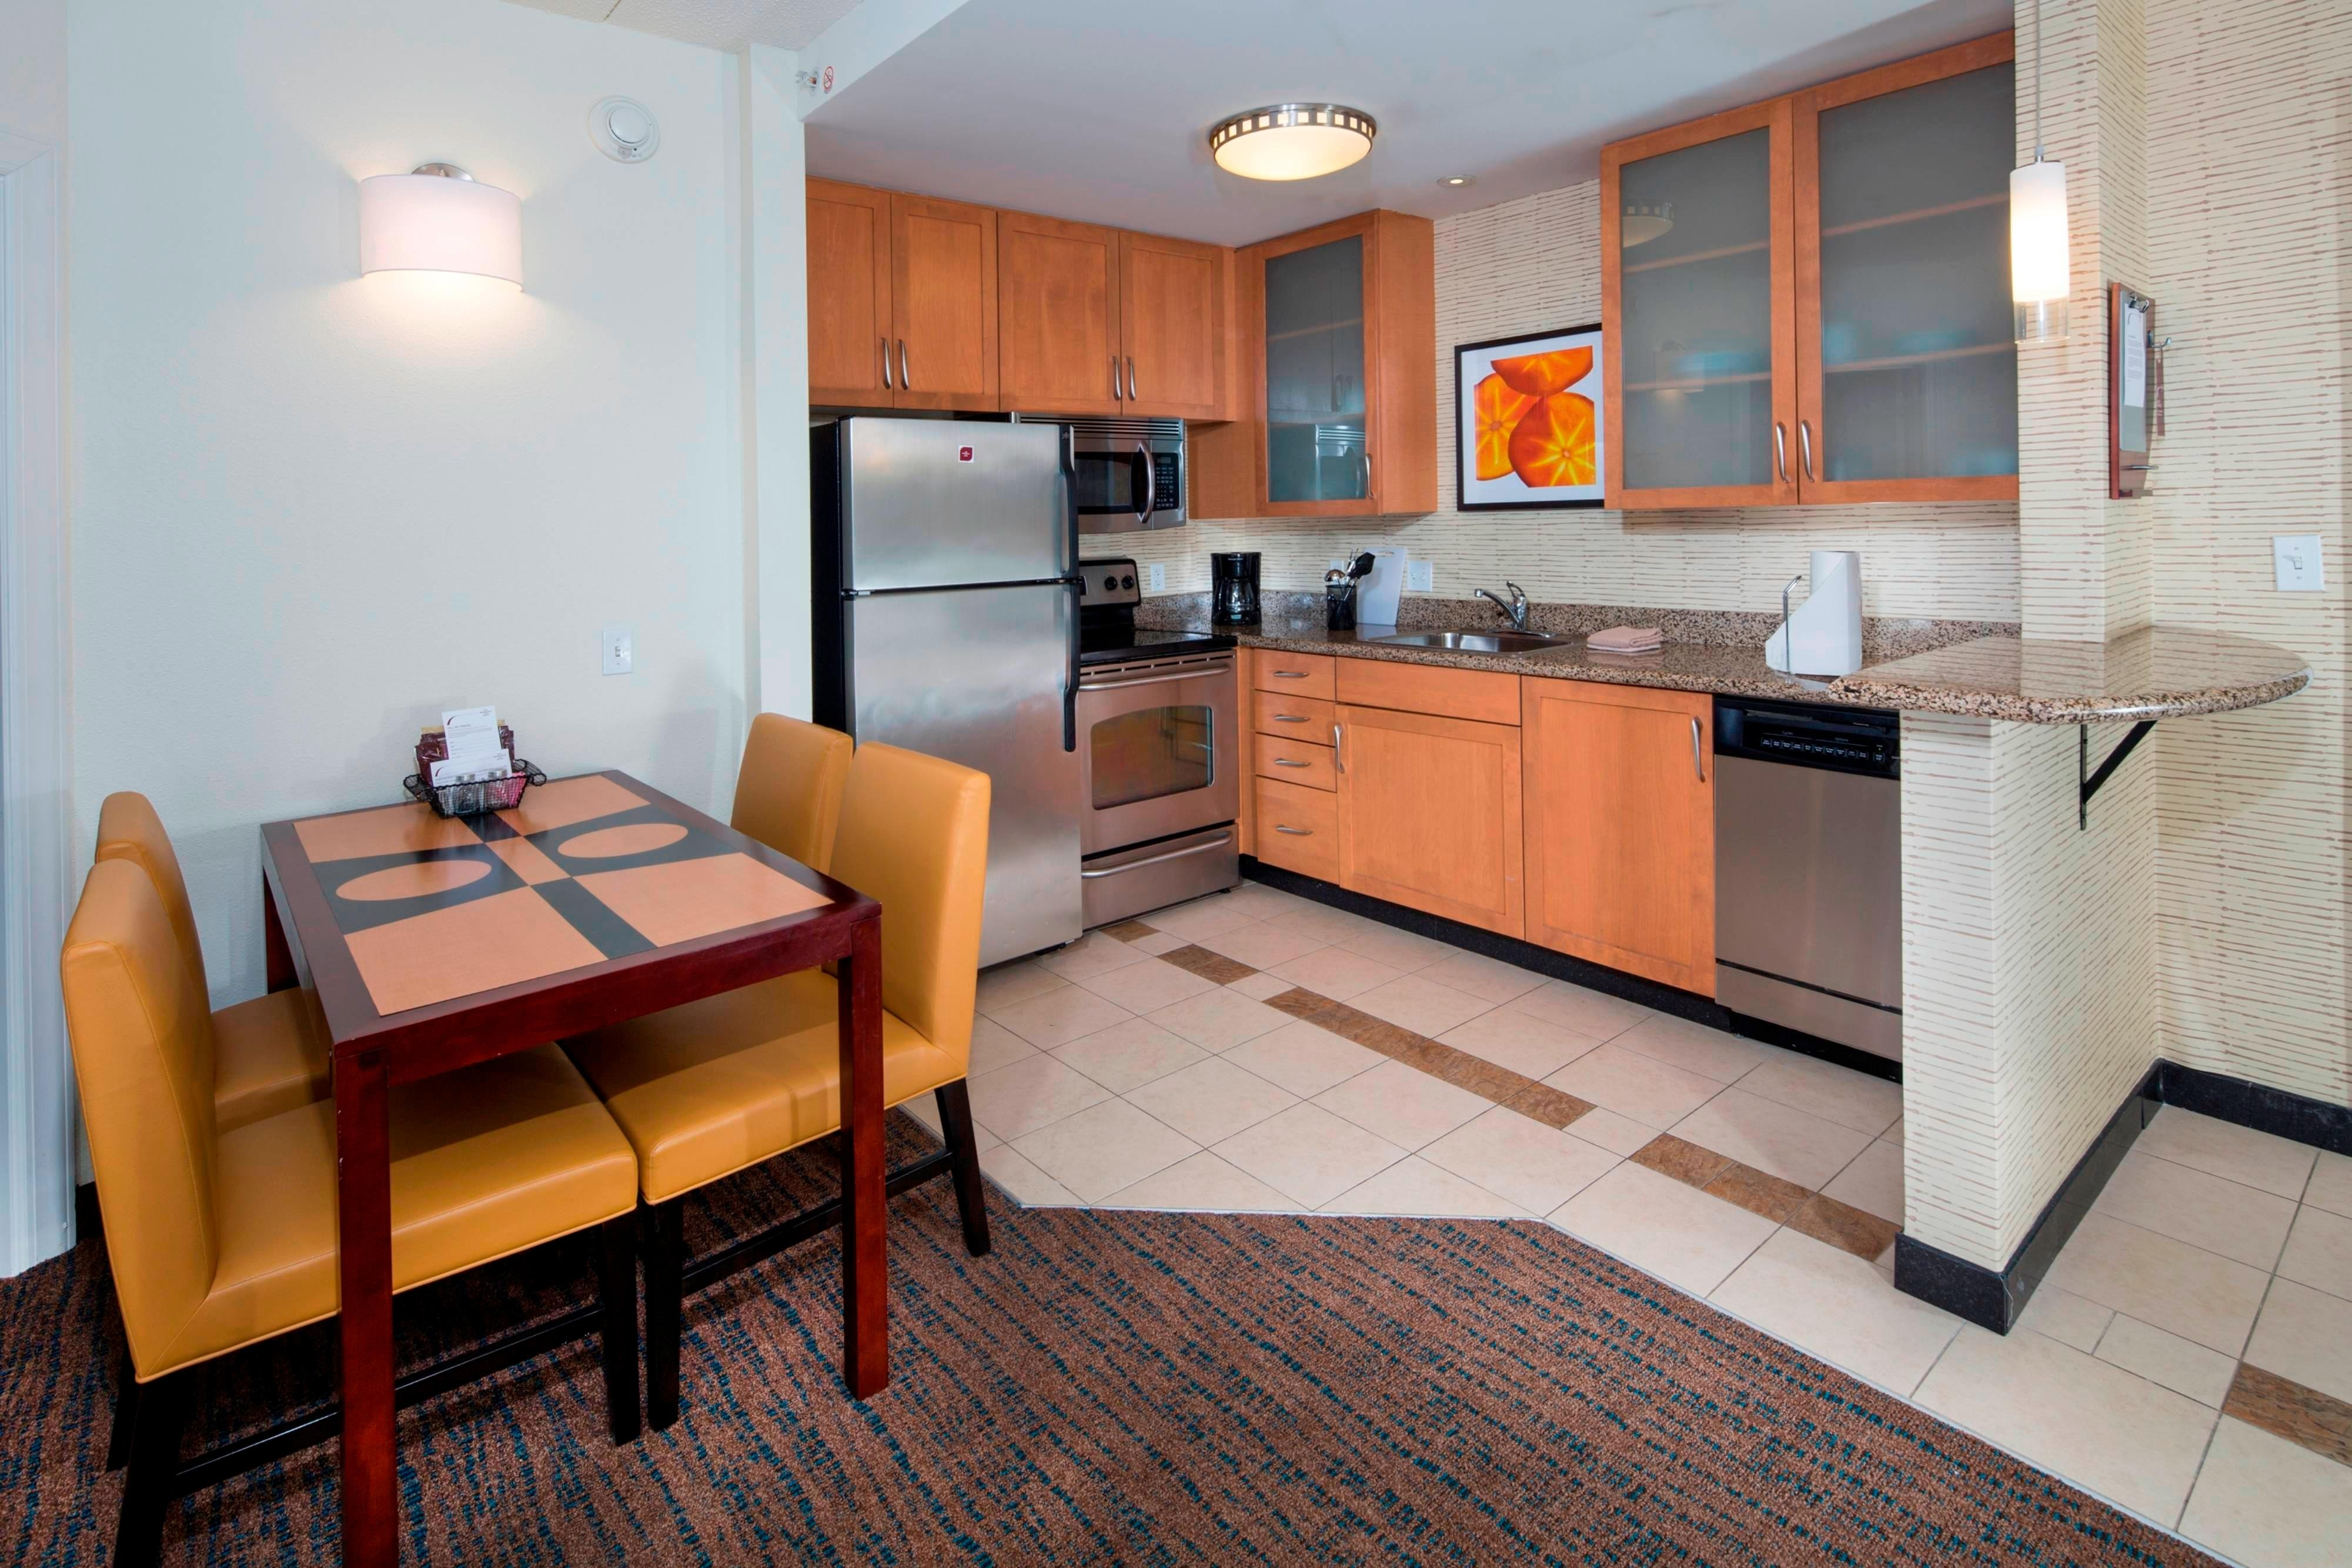 Suite kitchen area